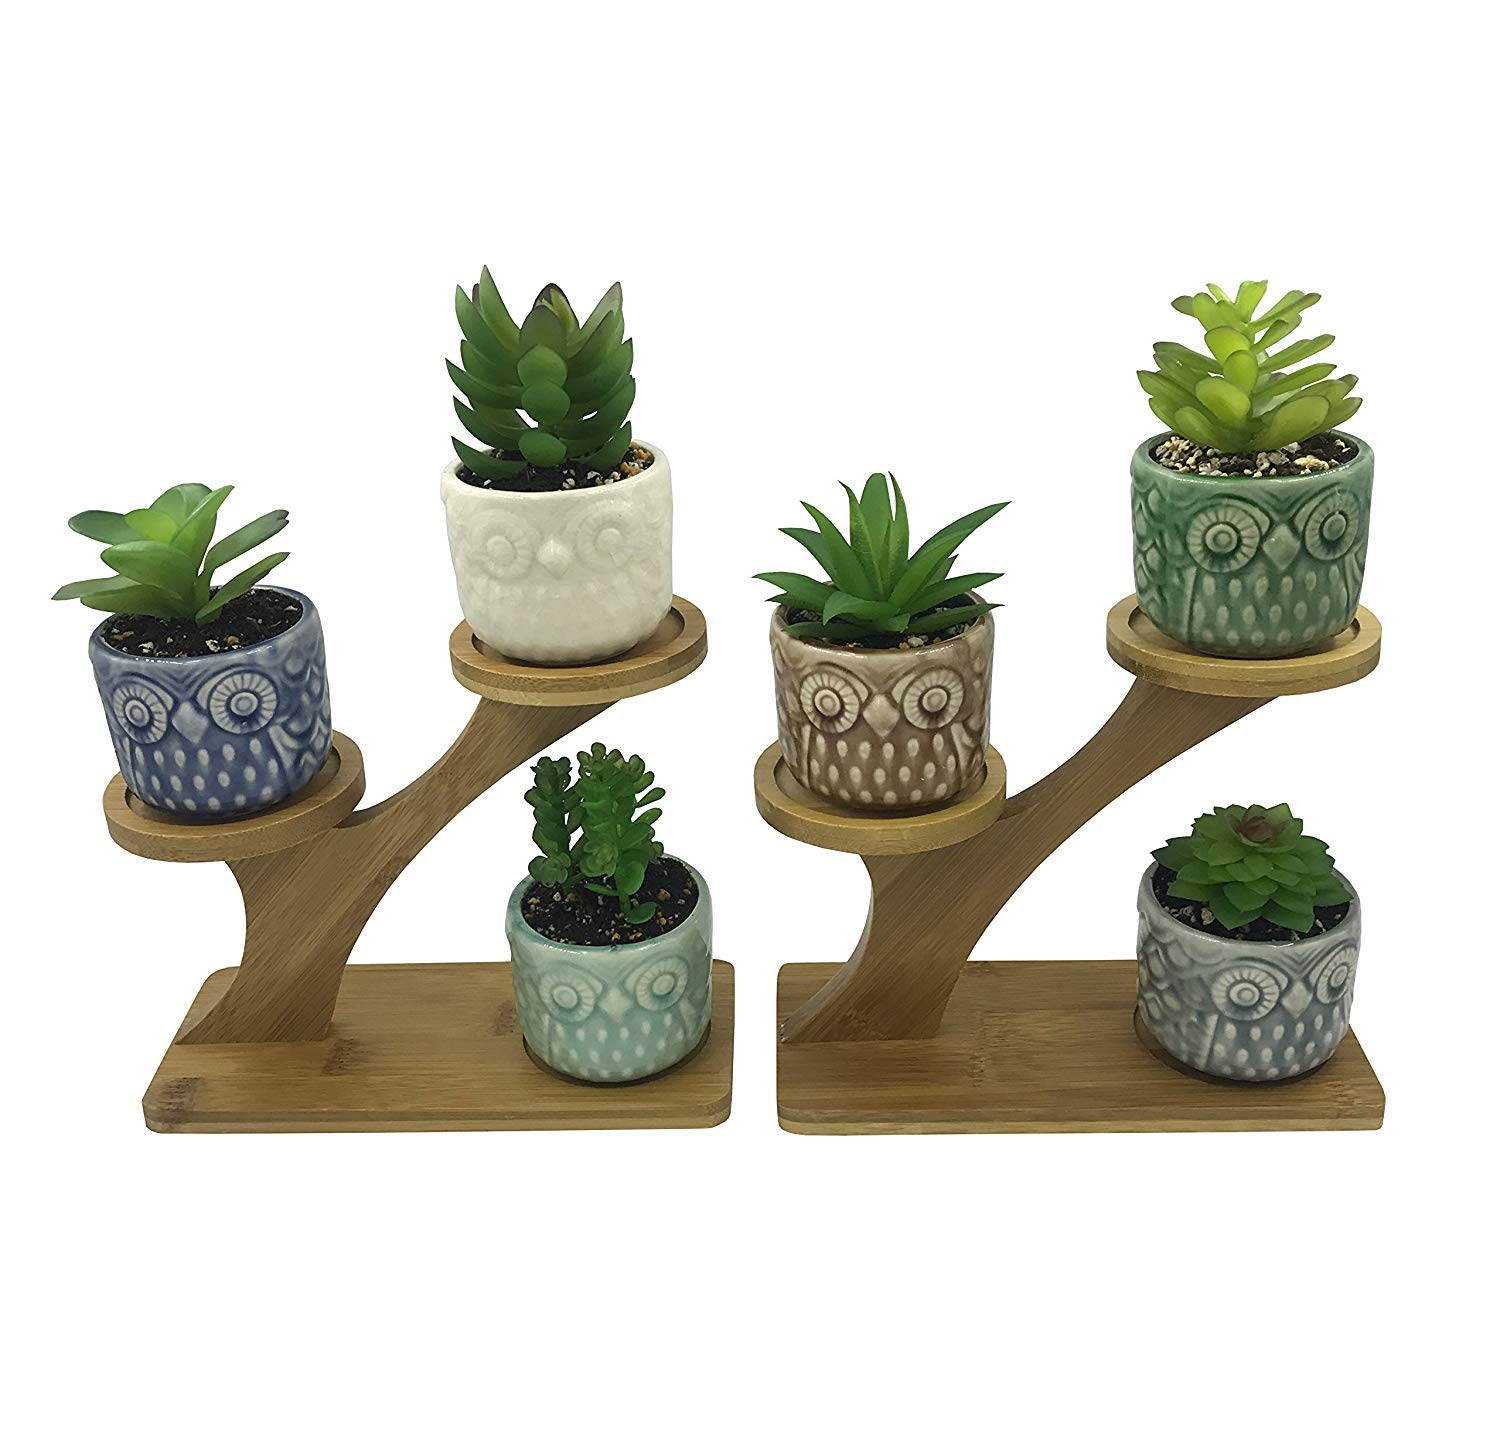 6 PCS Coloful Ceramic Round Owl Succulent Plant Pots, with 2 PCS 3 Tier Treetop Shaped Bamboo Flower Pot Stands Holder,for Home Garden Office Desktop Decoration